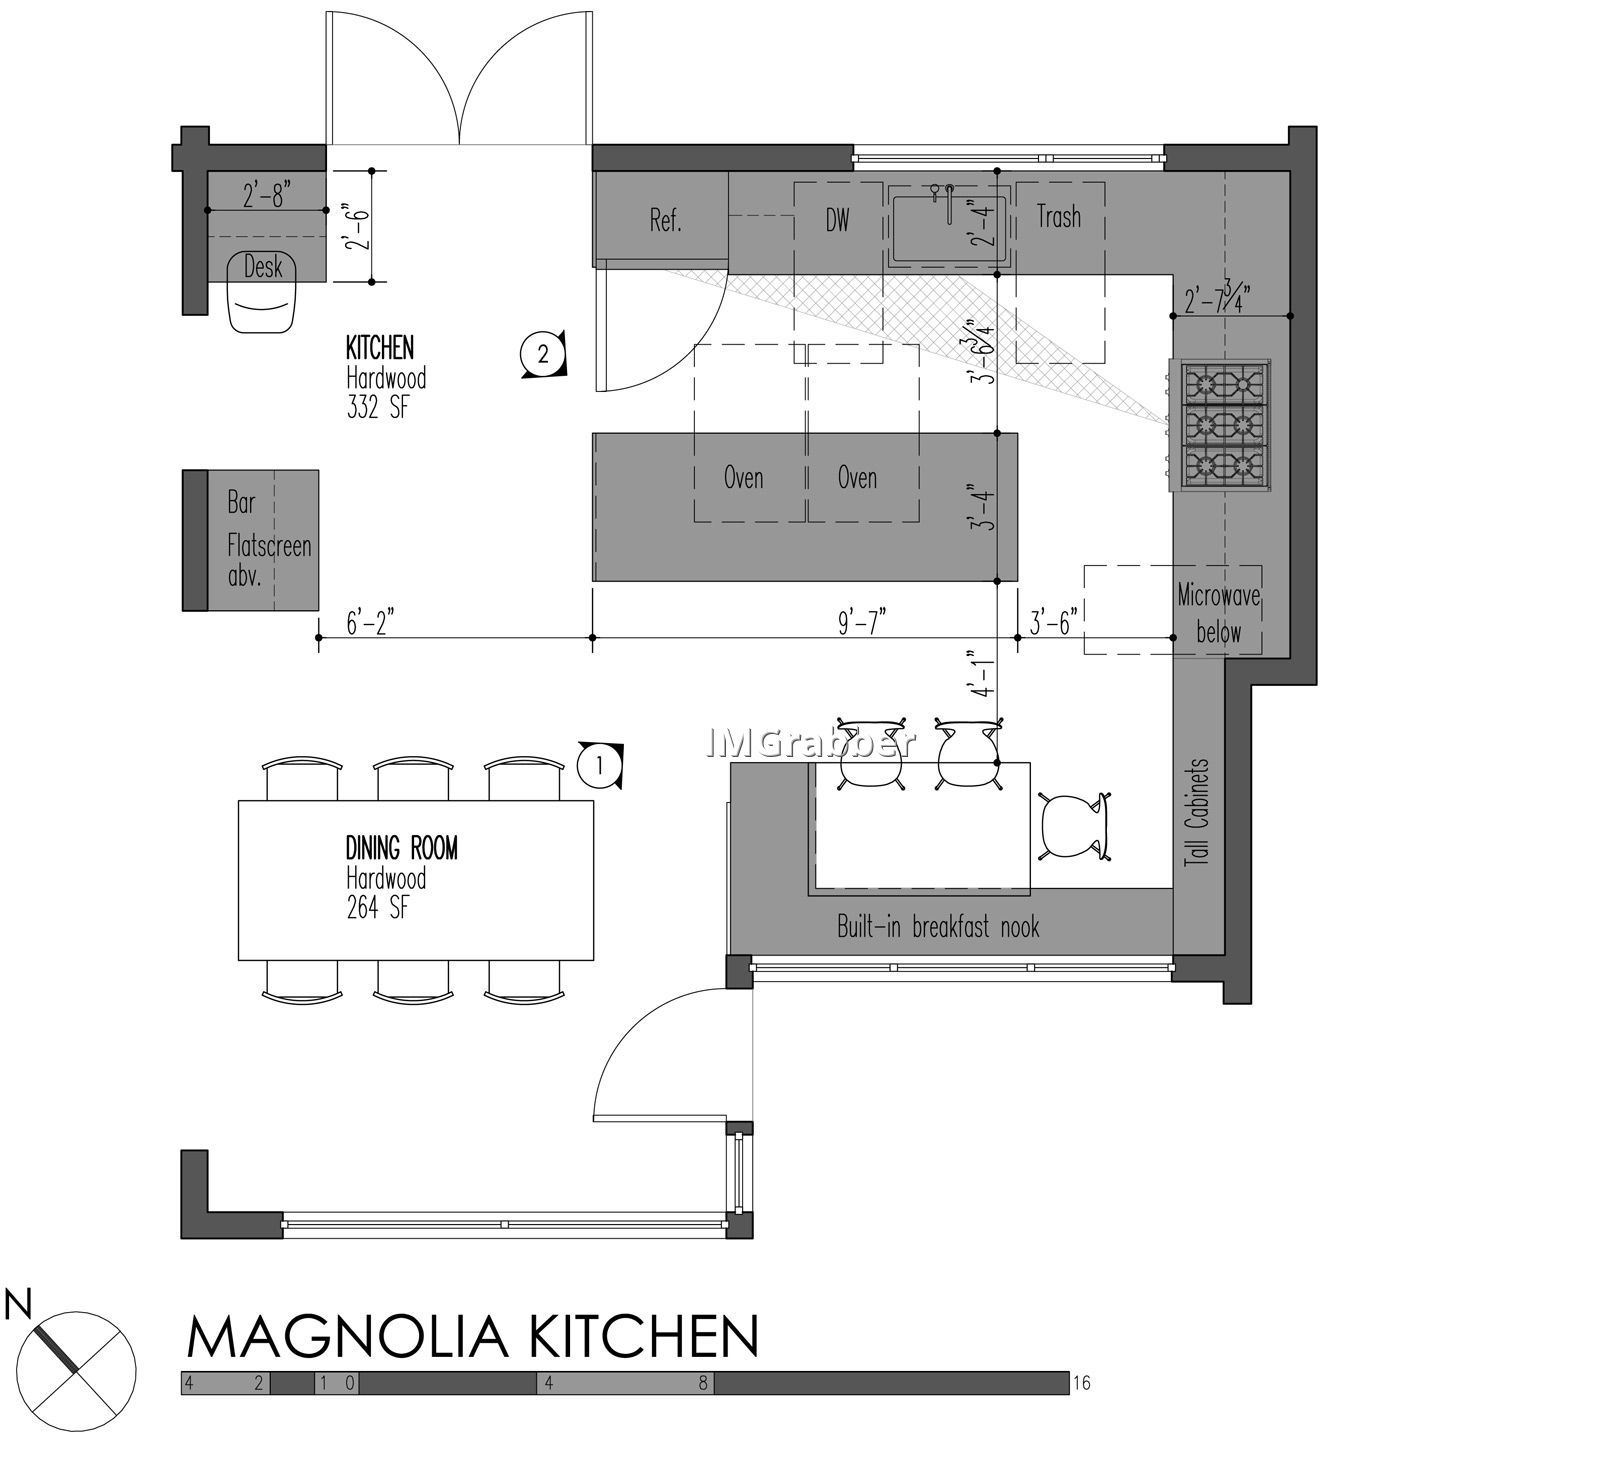 Kitchen Layout Dimensions With Island: Kitchen Island Dimensions Swfurn